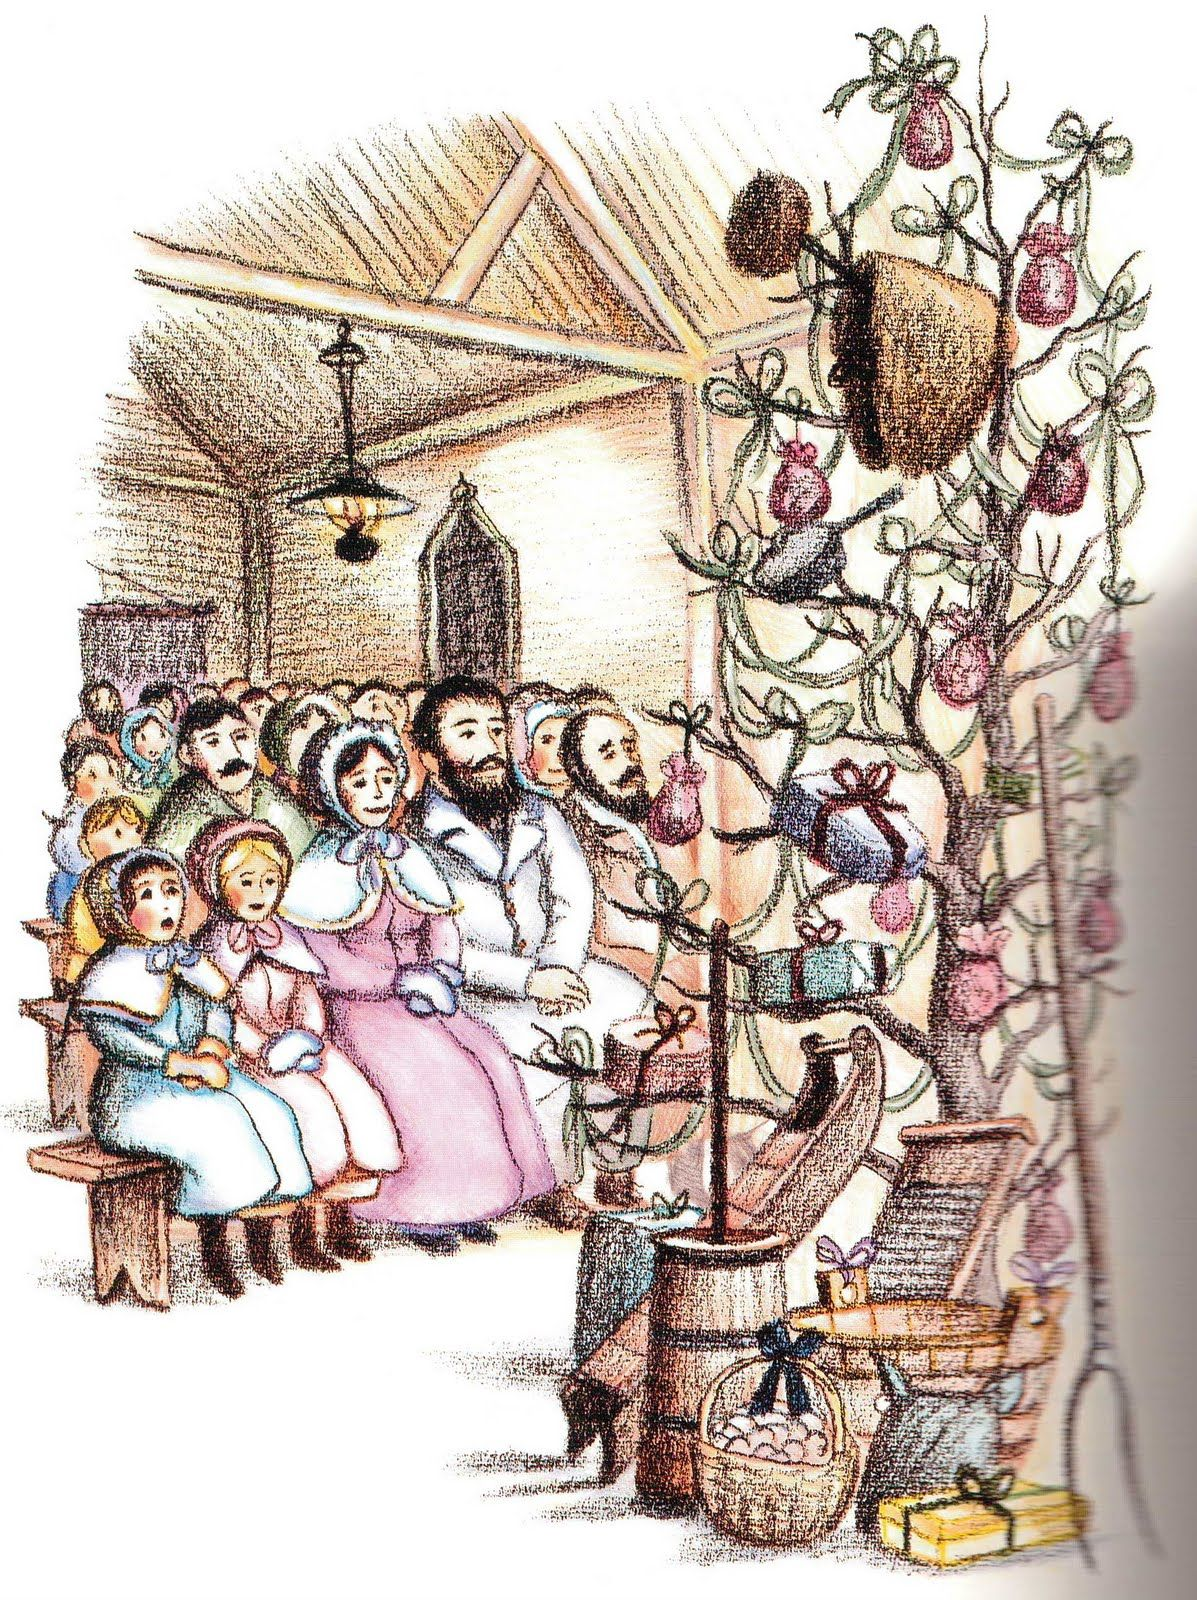 From \'A Little House Christmas\' by Laura Ingalls Wilder | La Navidad ...